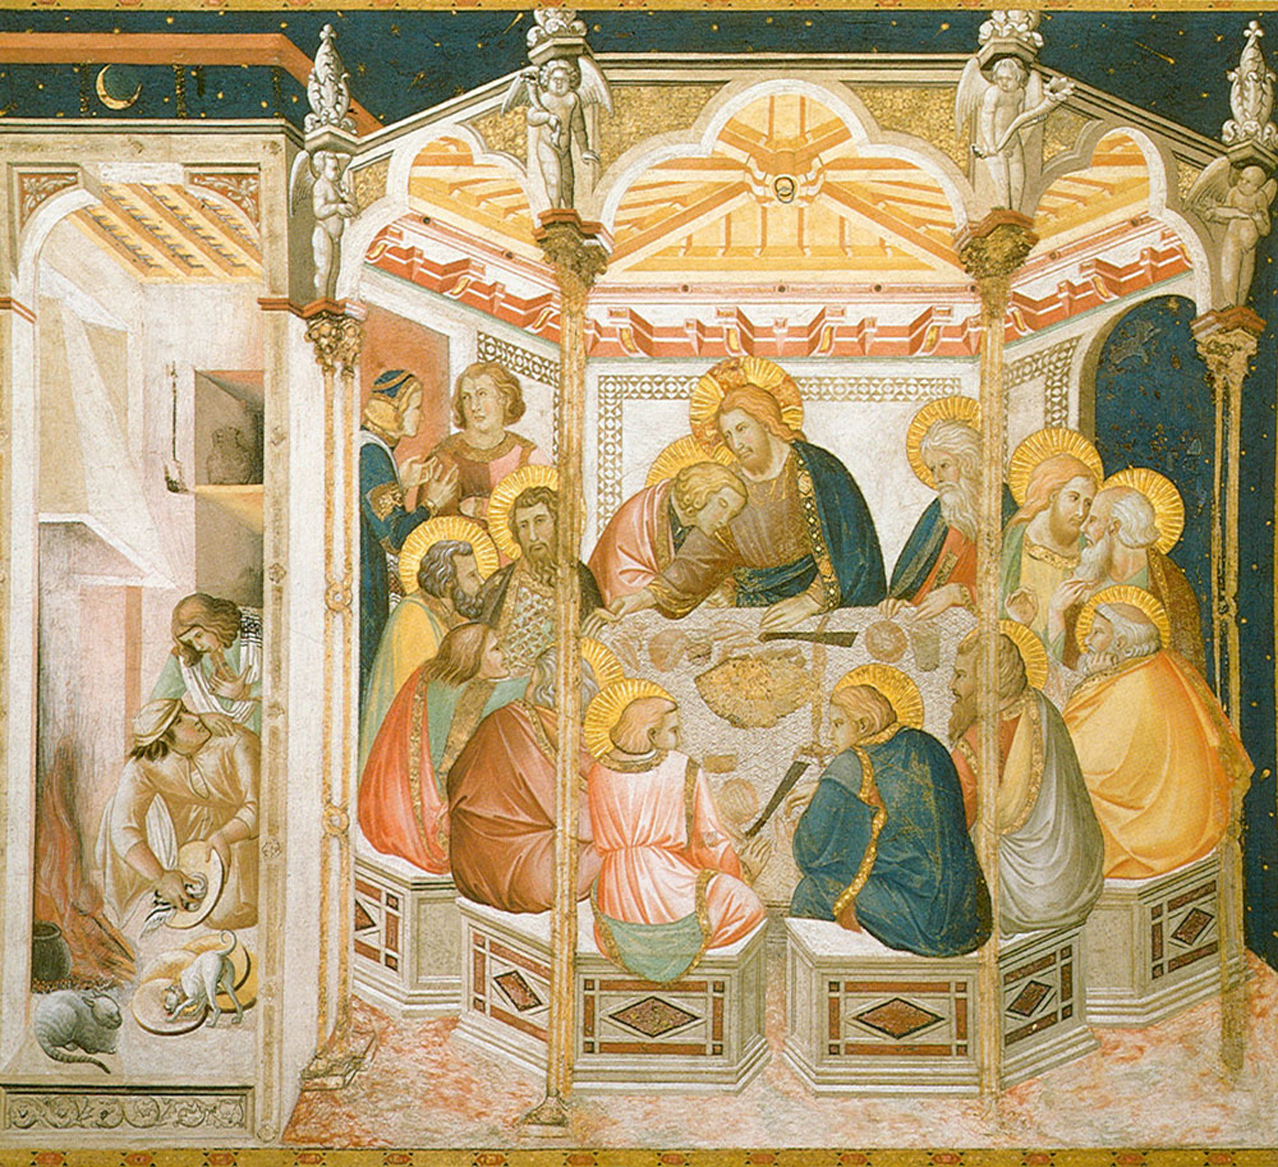 Pietro Lorenzetti (c. 1280 - 1348)  Assisi Frescoes: Last Supper  Fresco, about 1320  ower Basilica, San Francesco, southern transept, Assisi, Italy